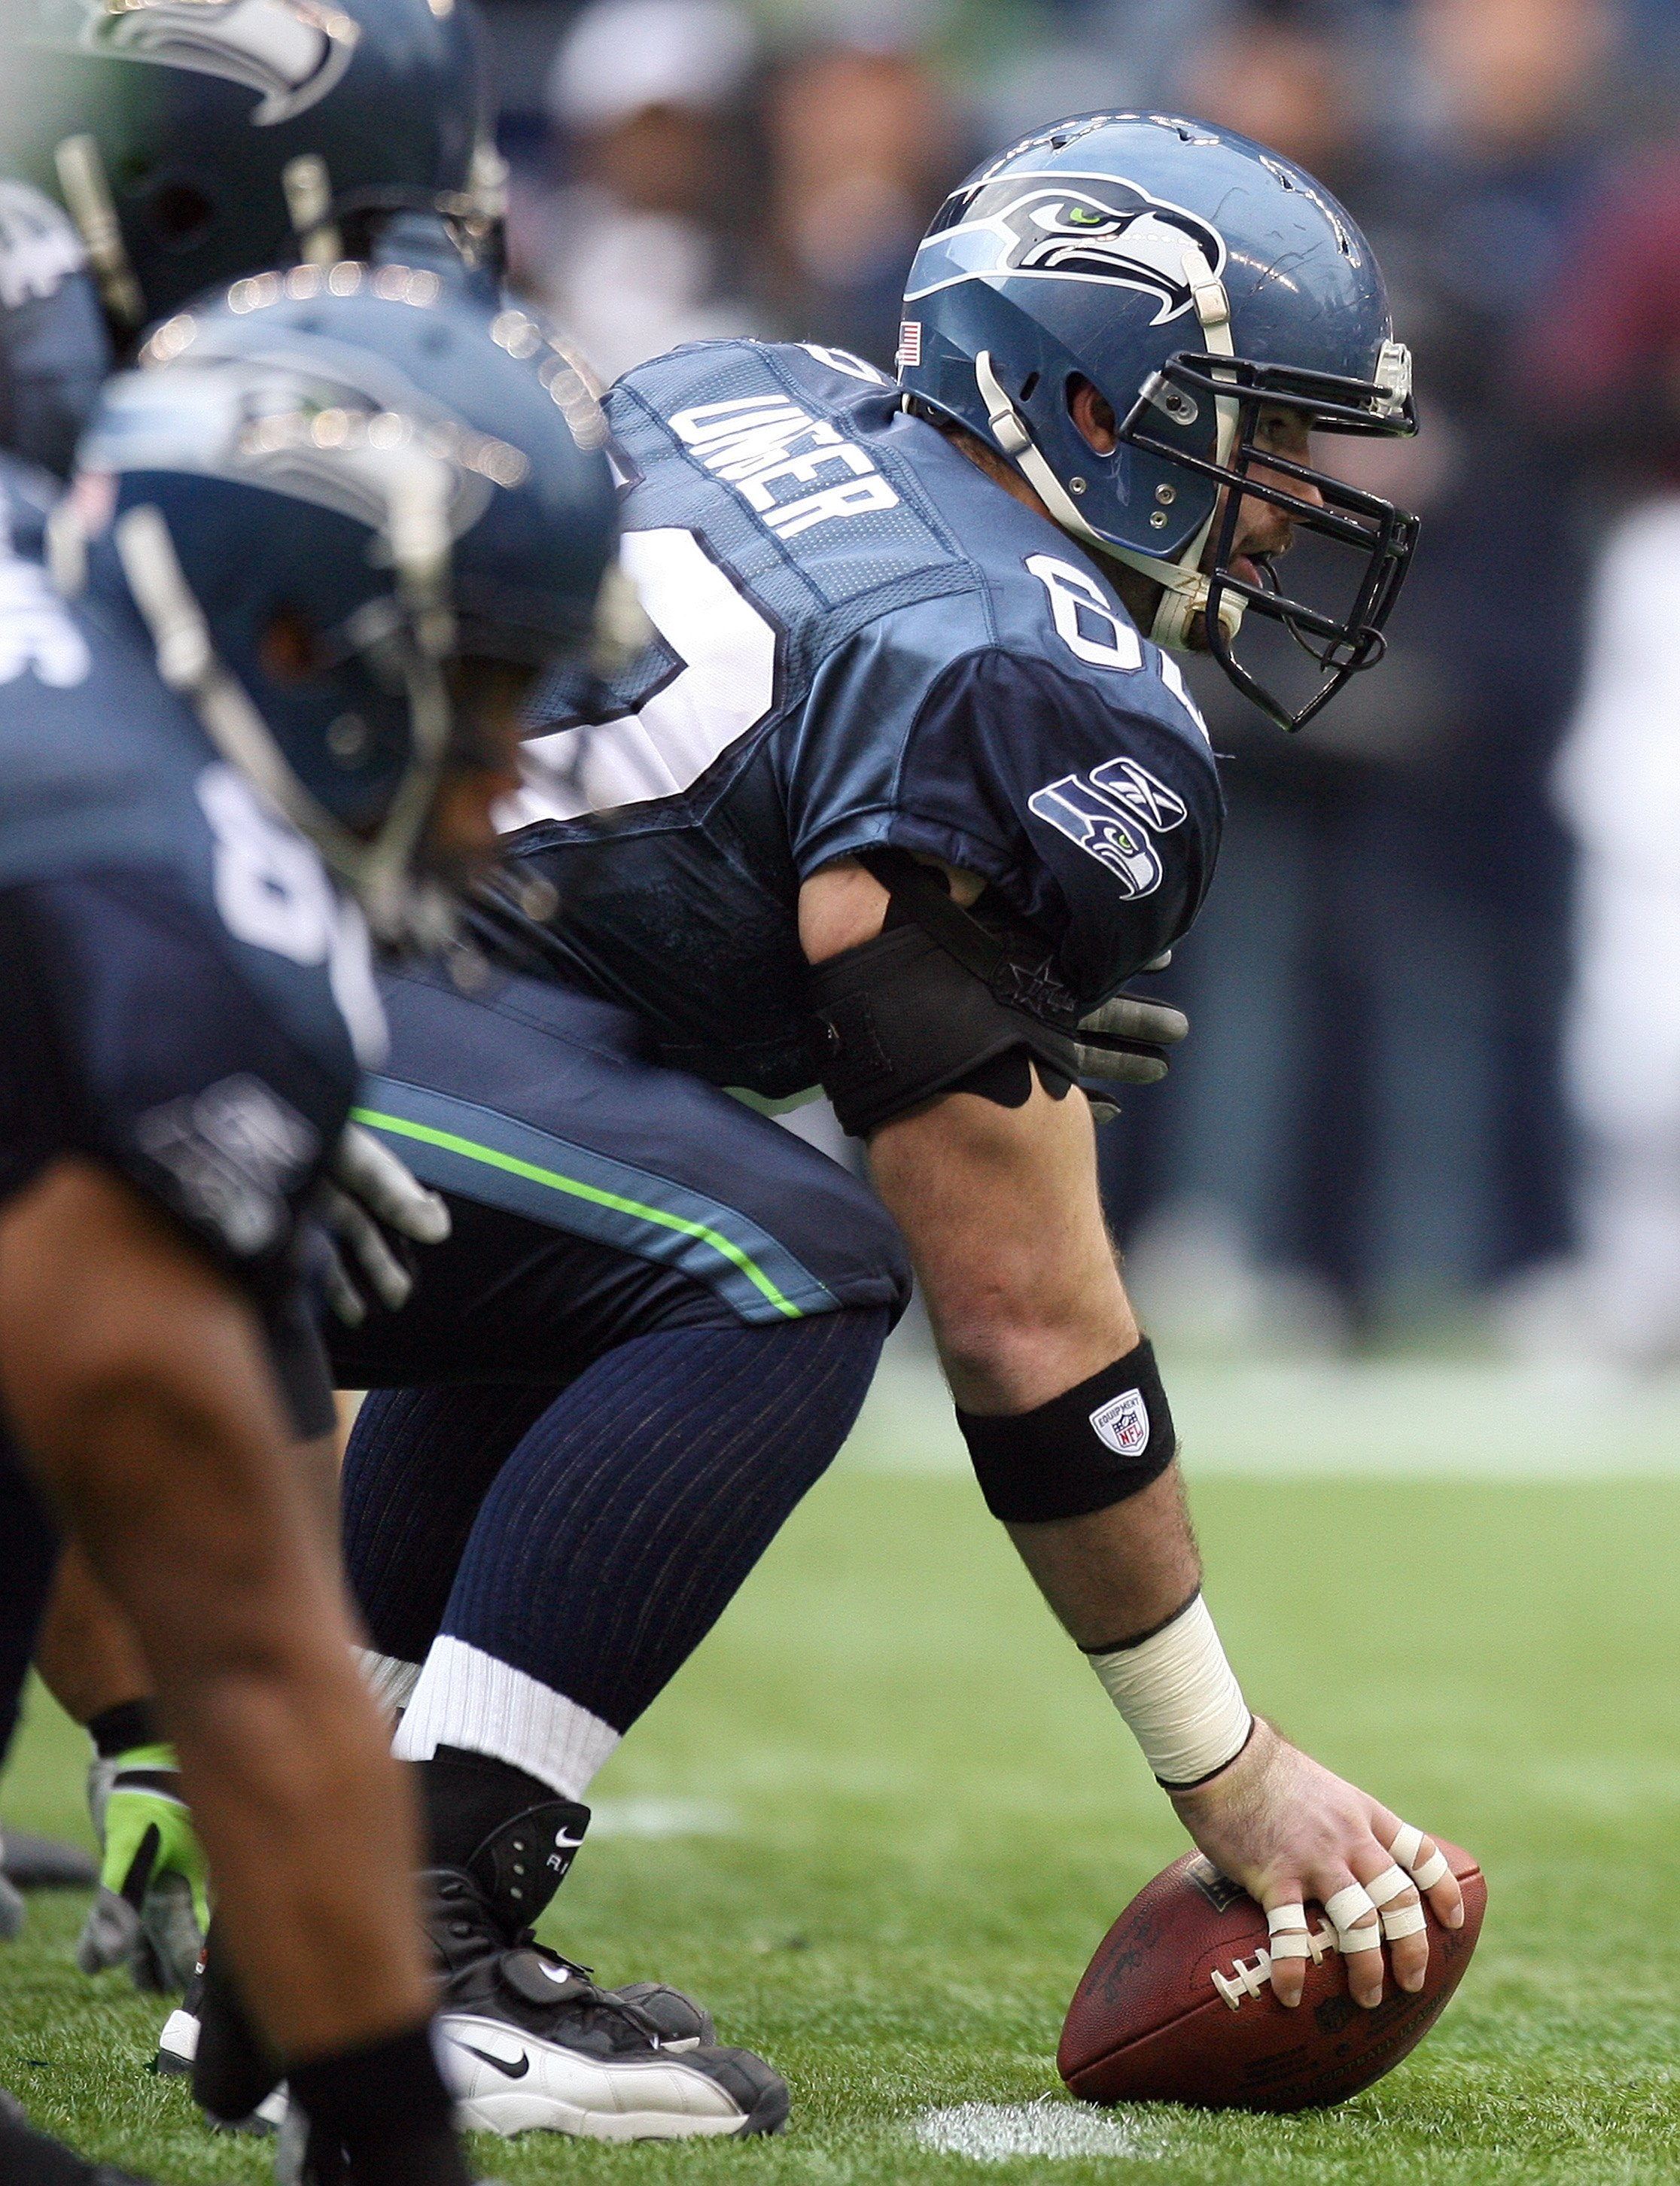 SEATTLE - DECEMBER 20:  Center Max Unger #60 of the Seattle Seahawks lines up against the Tampa Bay Buccaneers defense during their game on December 20, 2009 at Qwest Field in Seattle, Washington. The Buccaneers defeated the Seahawks 24-7. (Photo by Otto